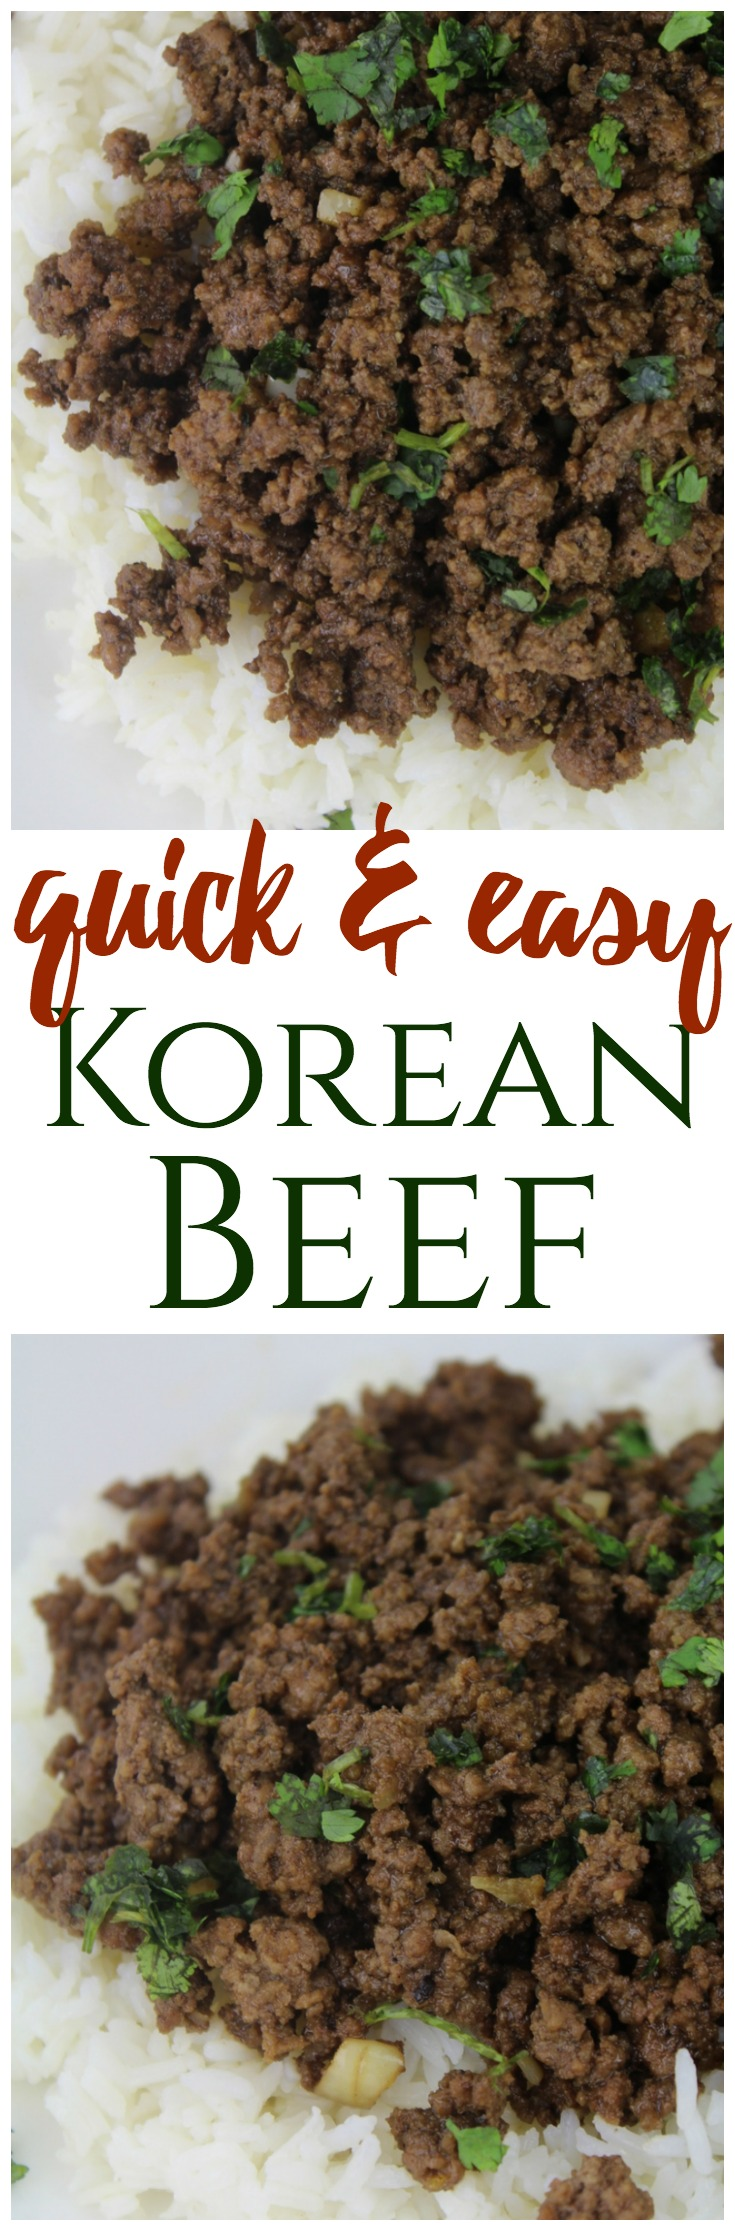 An easy Korean Beef recipe with simple ingredients that can be ready in just minutes! #easydinner #weeknight #beef